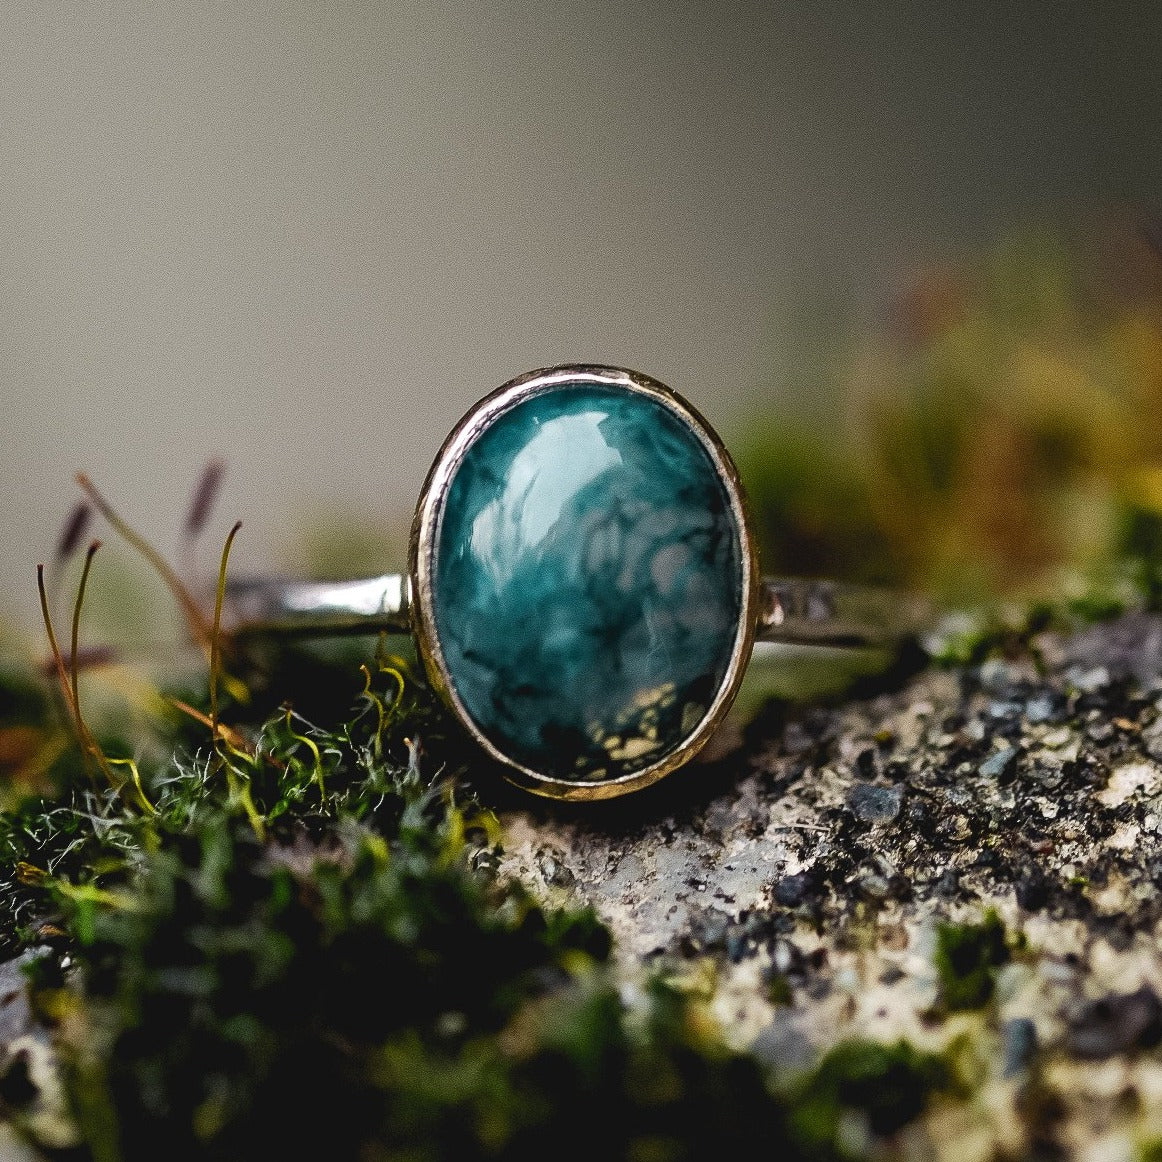 Caitlyn Chapman - Moss Agate Ring